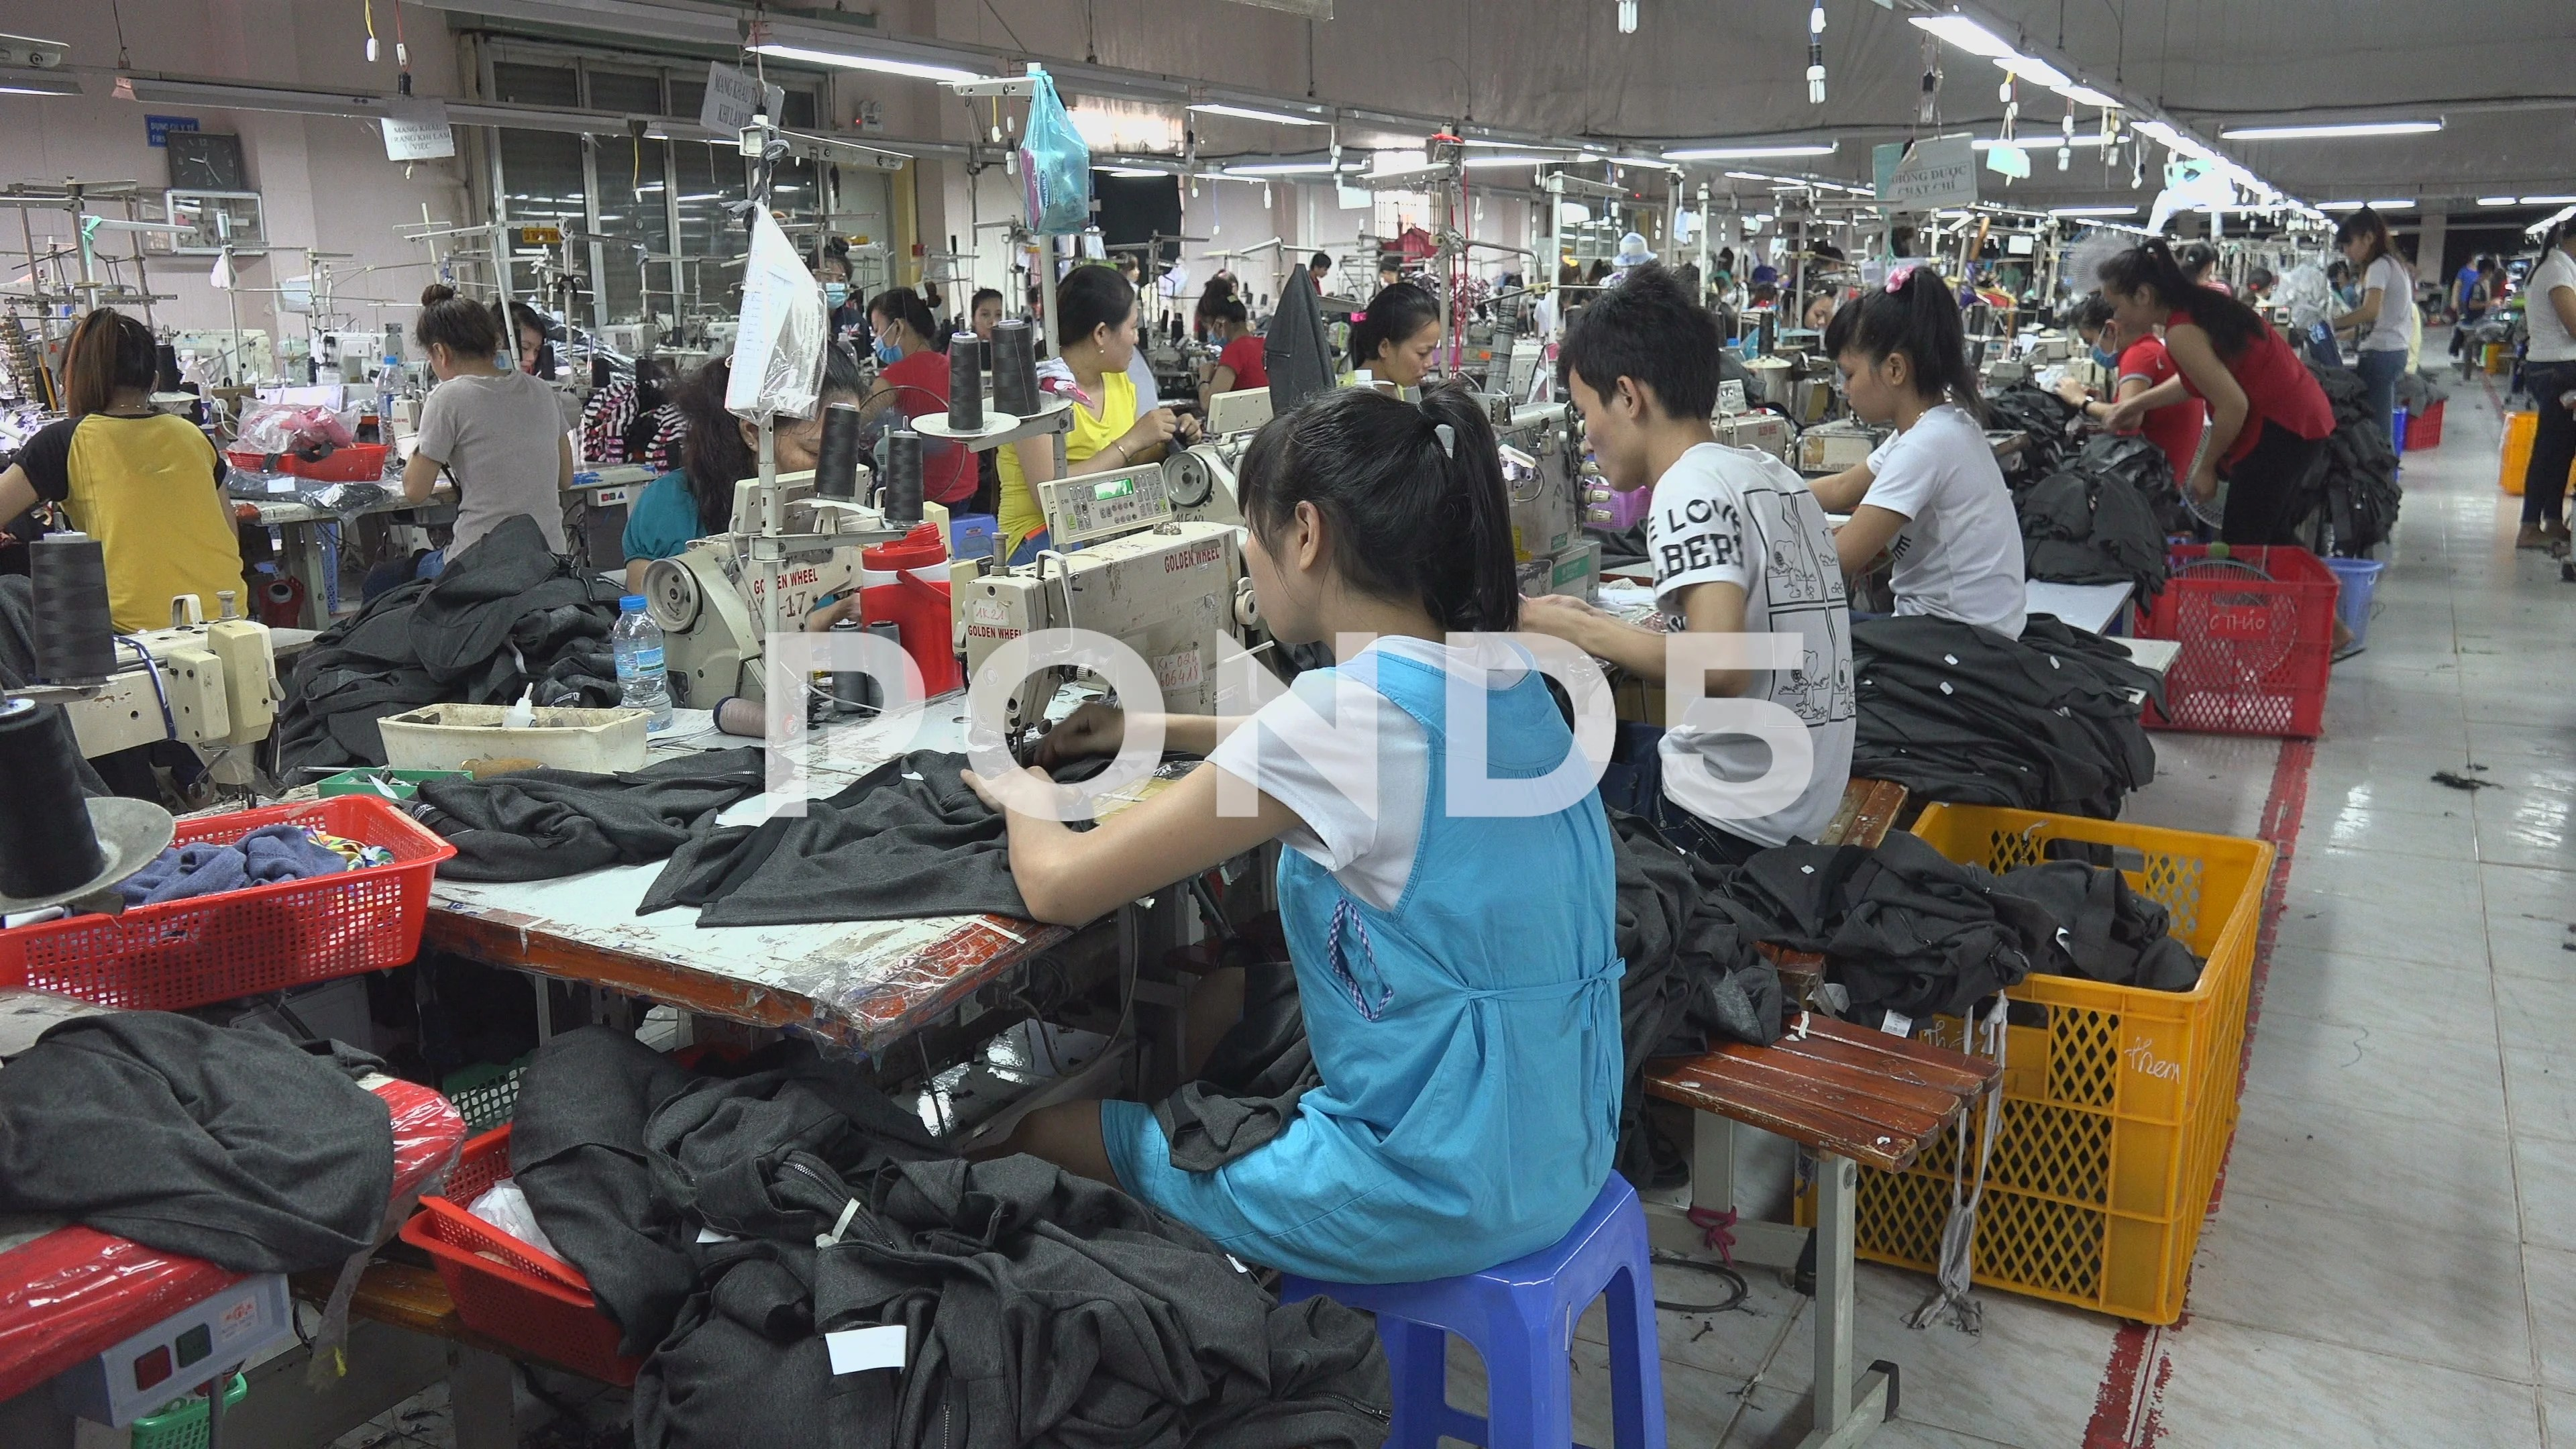 Garment Production Clothing Factory Floor Manufacturing